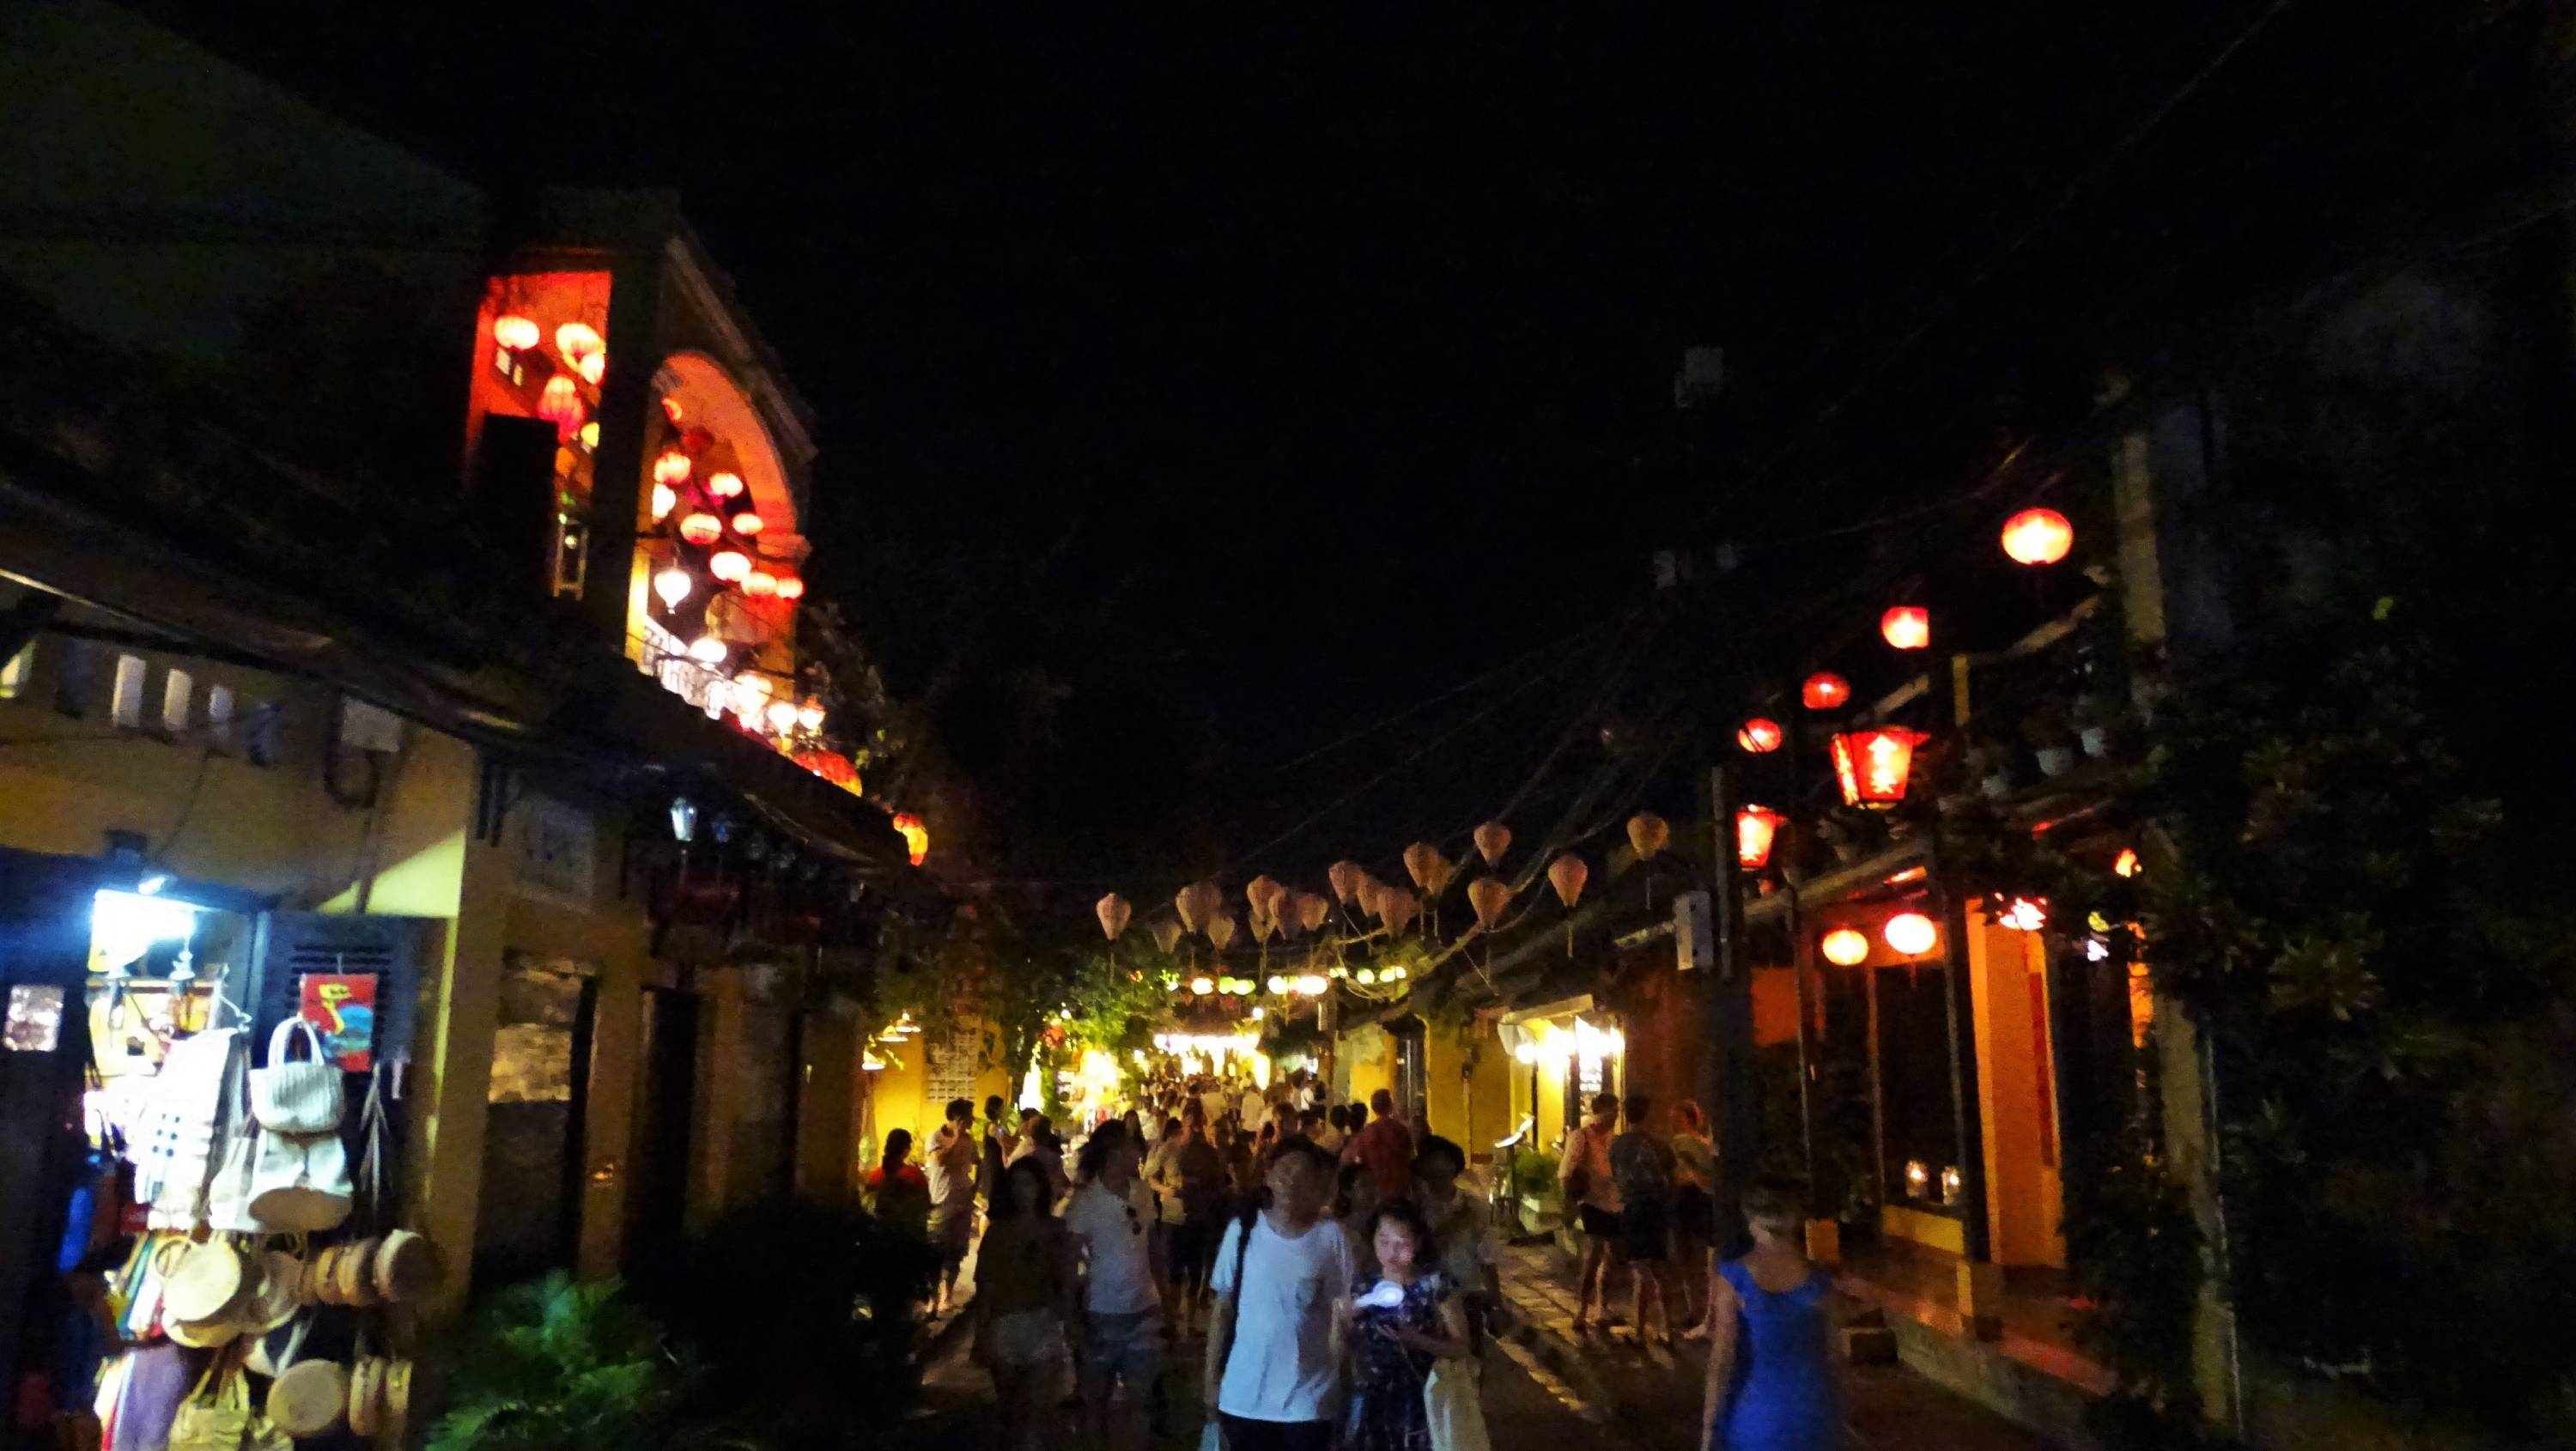 Crowds walking under lit paper lanterns in Hoi An old town